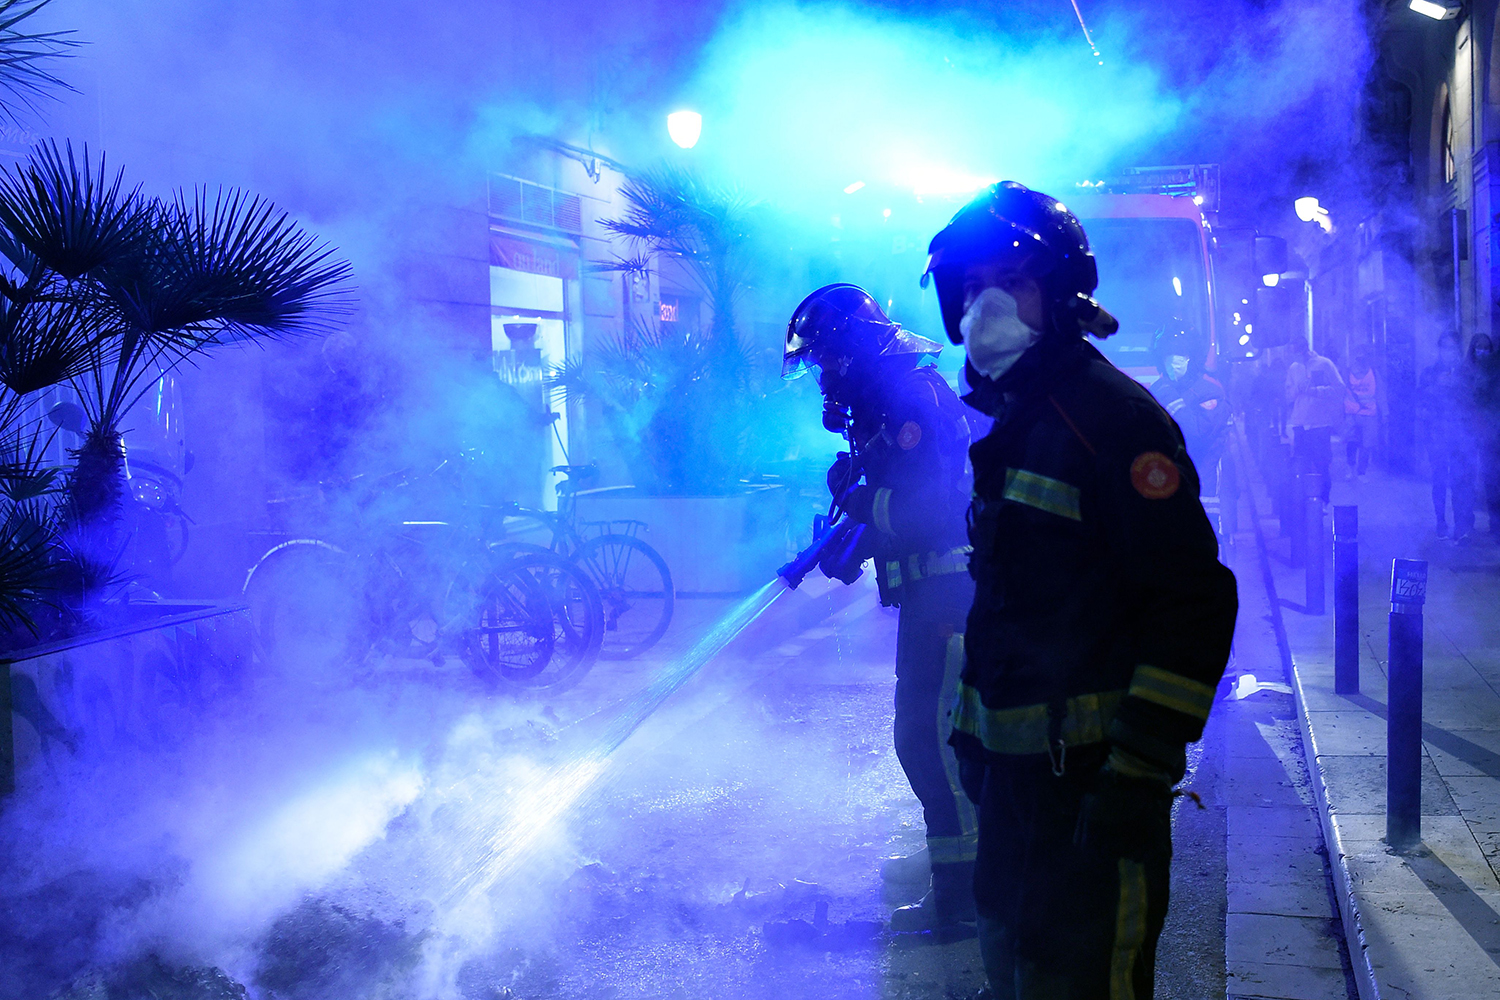 Firefighters put out a blaze during a demonstration against the government's pandemic regulations in Barcelona, Spain, on Oct. 26. Spain's Catalonia region said it was looking into imposing a lockdown on weekends to fight the spread of the coronavirus, a day after a nighttime curfew came into effect across the country, sparking protests. JOSEP LAGO/AFP via Getty Images